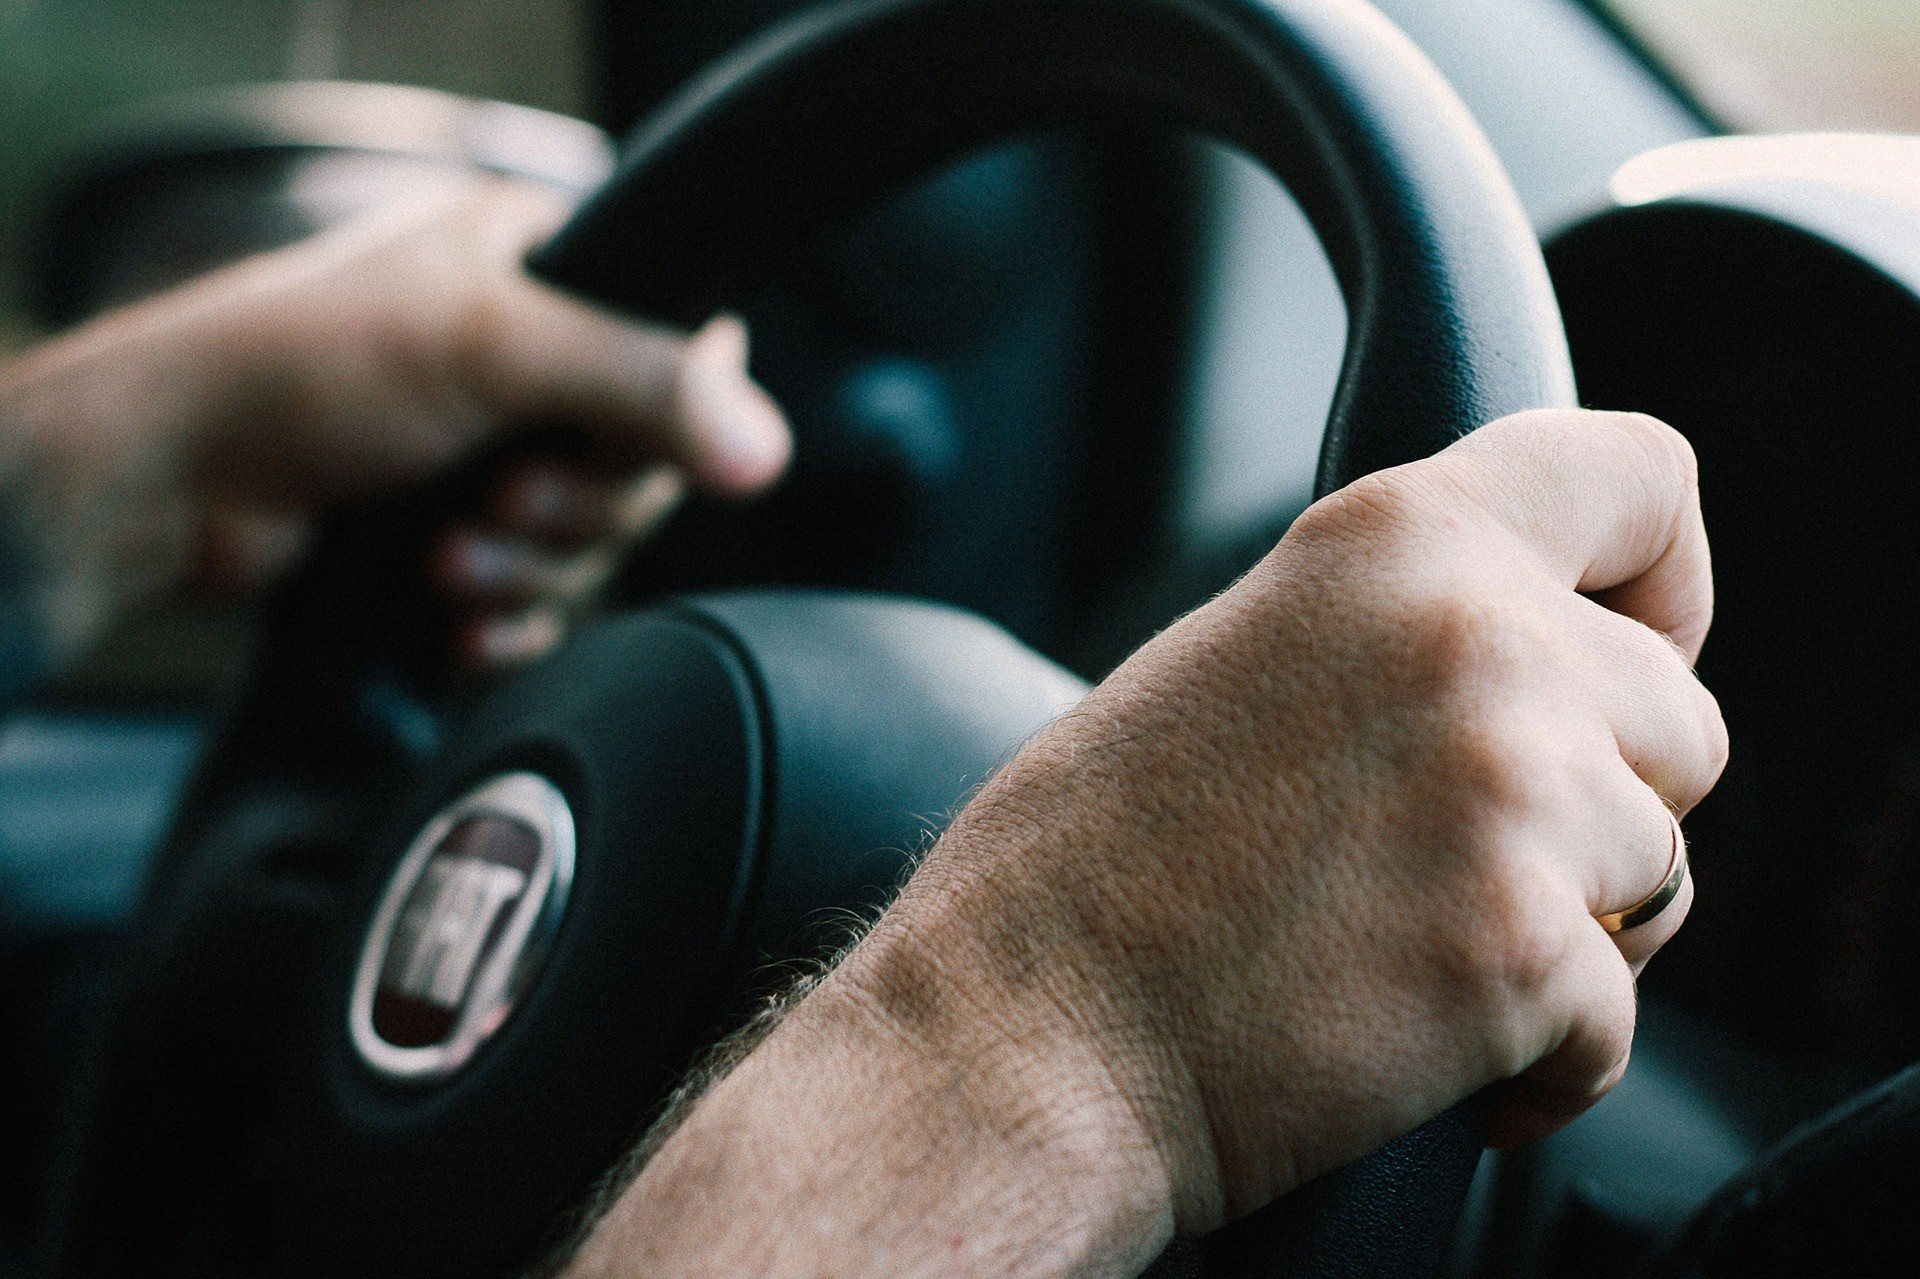 Tips to improve your driving posture